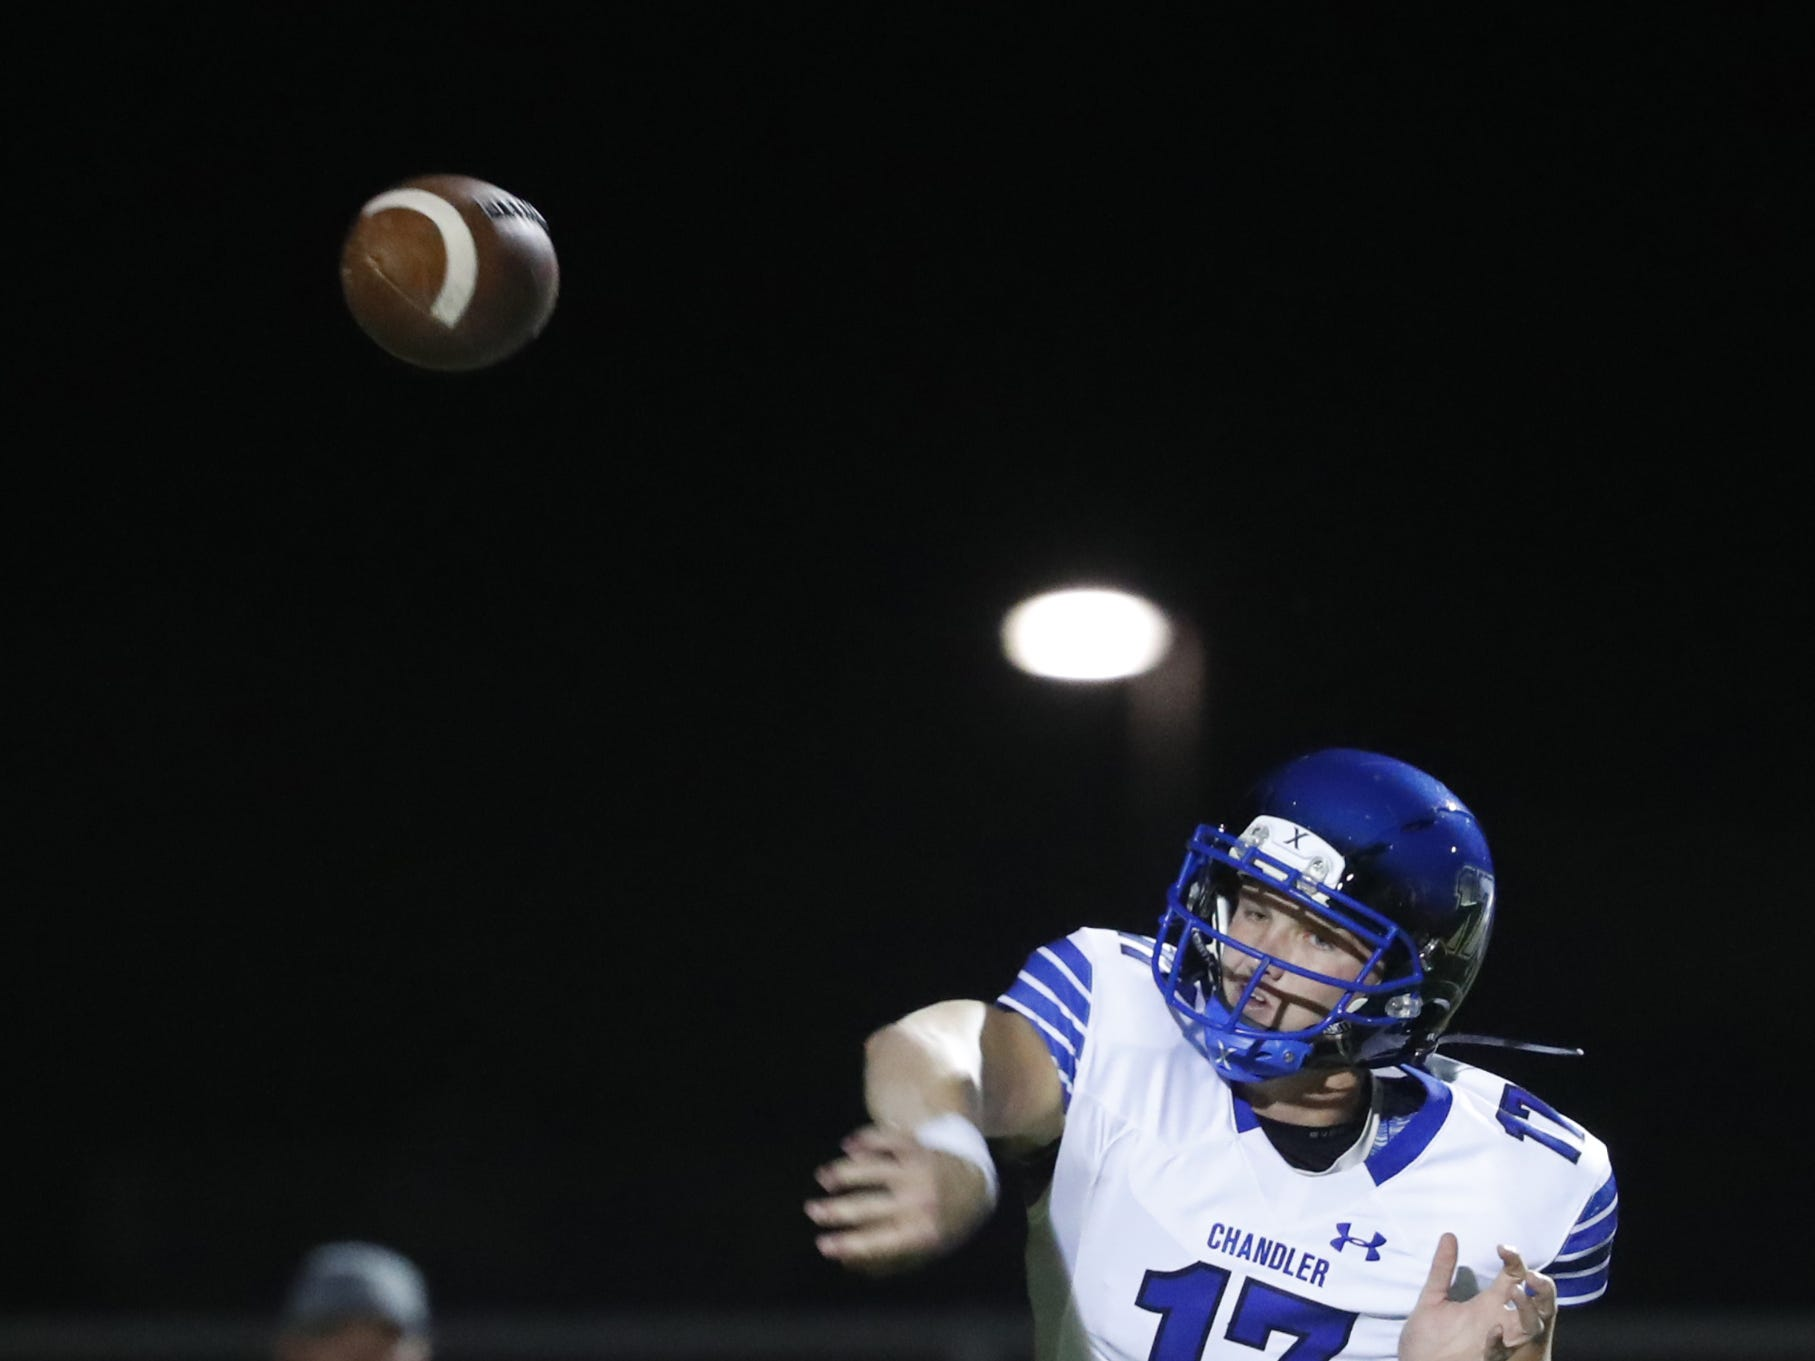 Chandler's Jacob Conover (17) throws a pass against Perry at Perry High School in Gilbert, Ariz. on Sept. 28, 2018.  #azhsfb